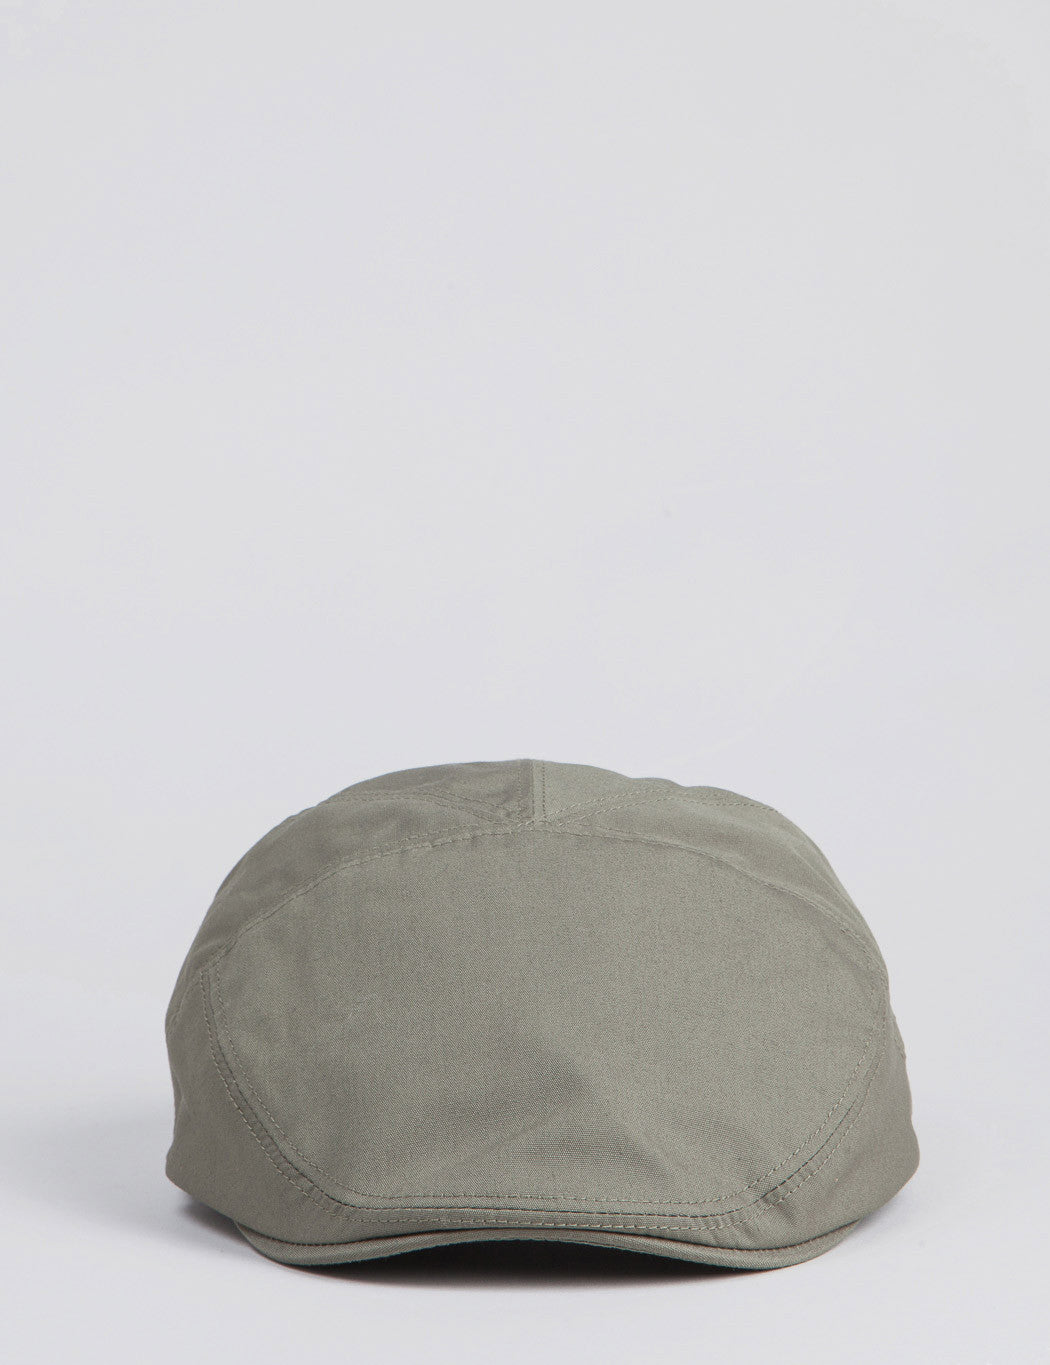 d4bf4e1cdb5 Bailey Graham Waterproof Ivy Flat Cap - Olive – URBAN EXCESS